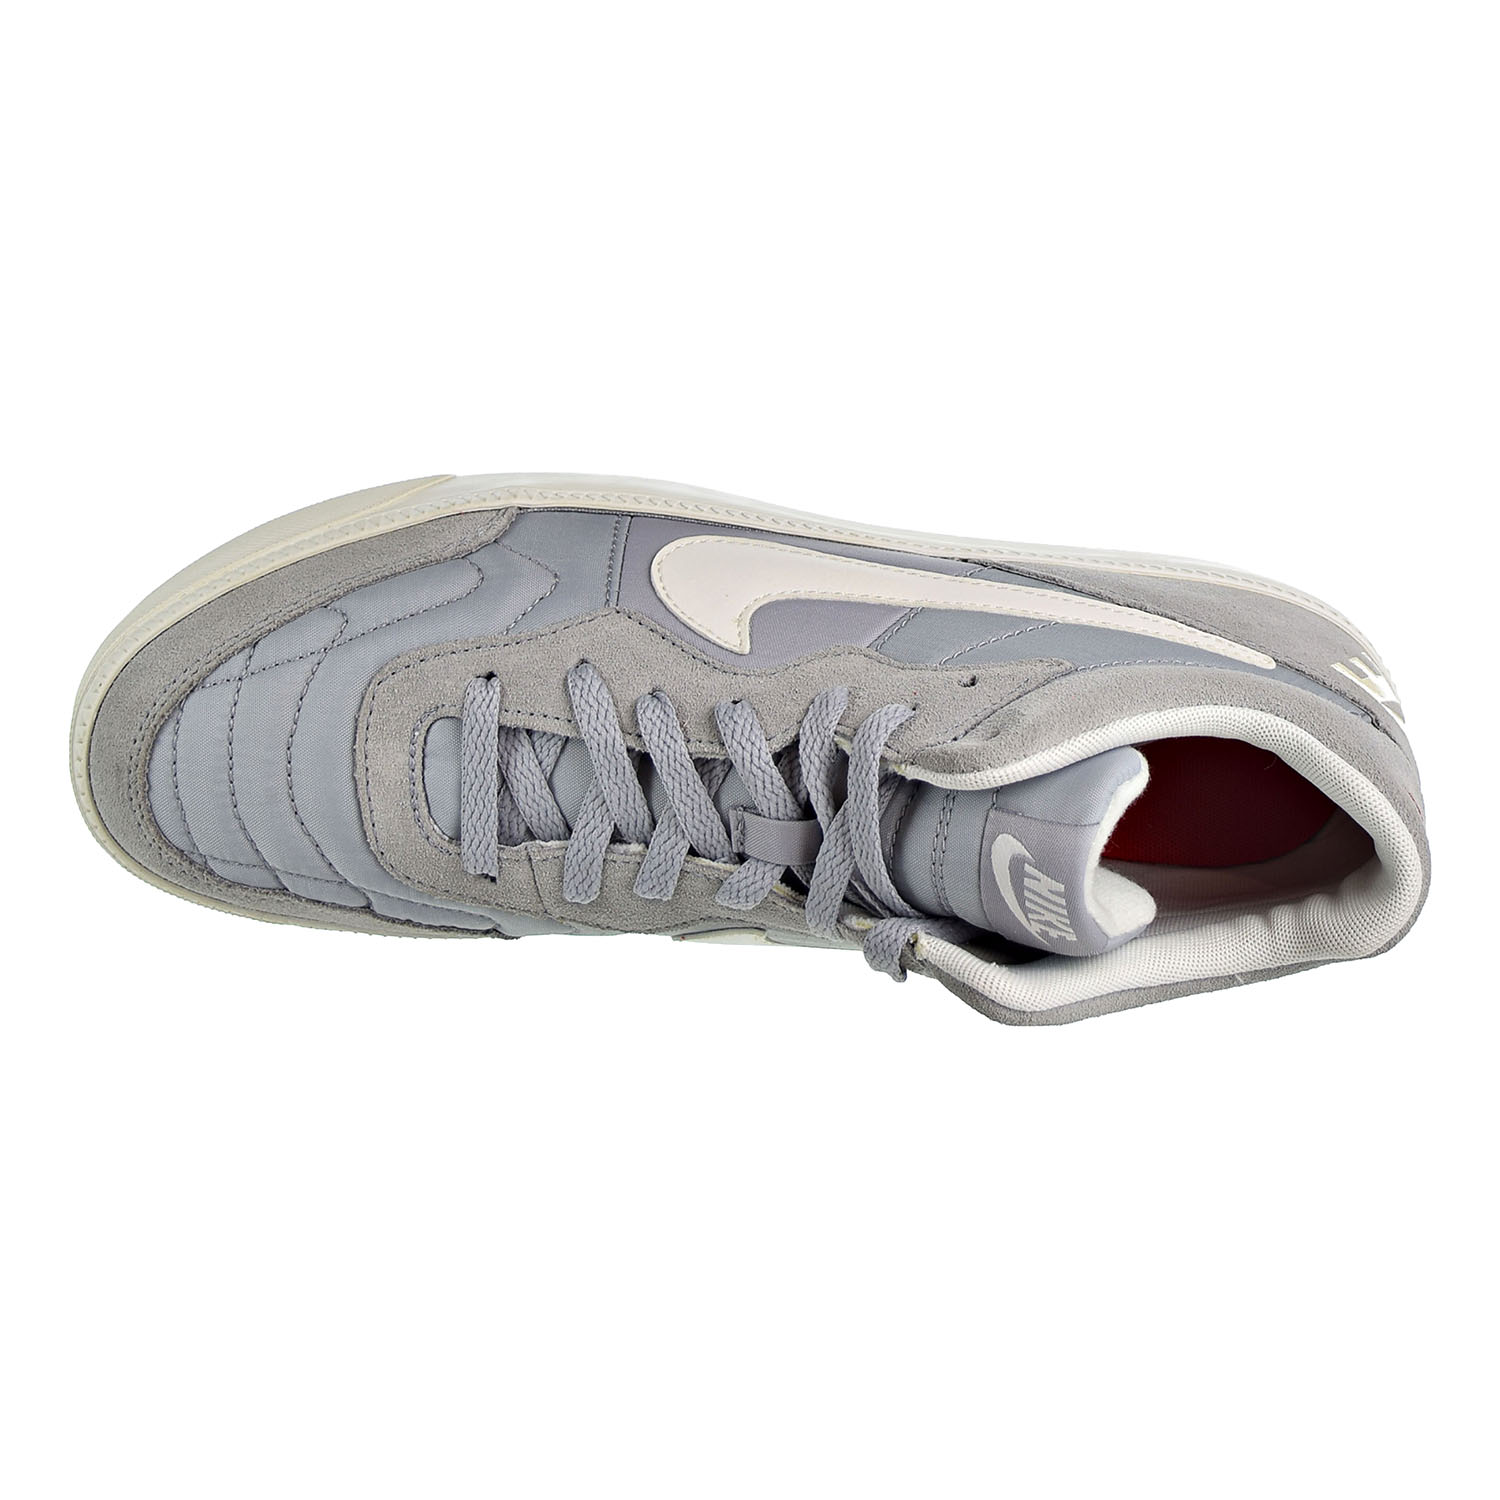 7b3e5c85c Nike NSW Tiempo Trainer Mid Men's Shoes Wolf Grey/Ivory/Challenge Red/Gum  Mid B 644822-062